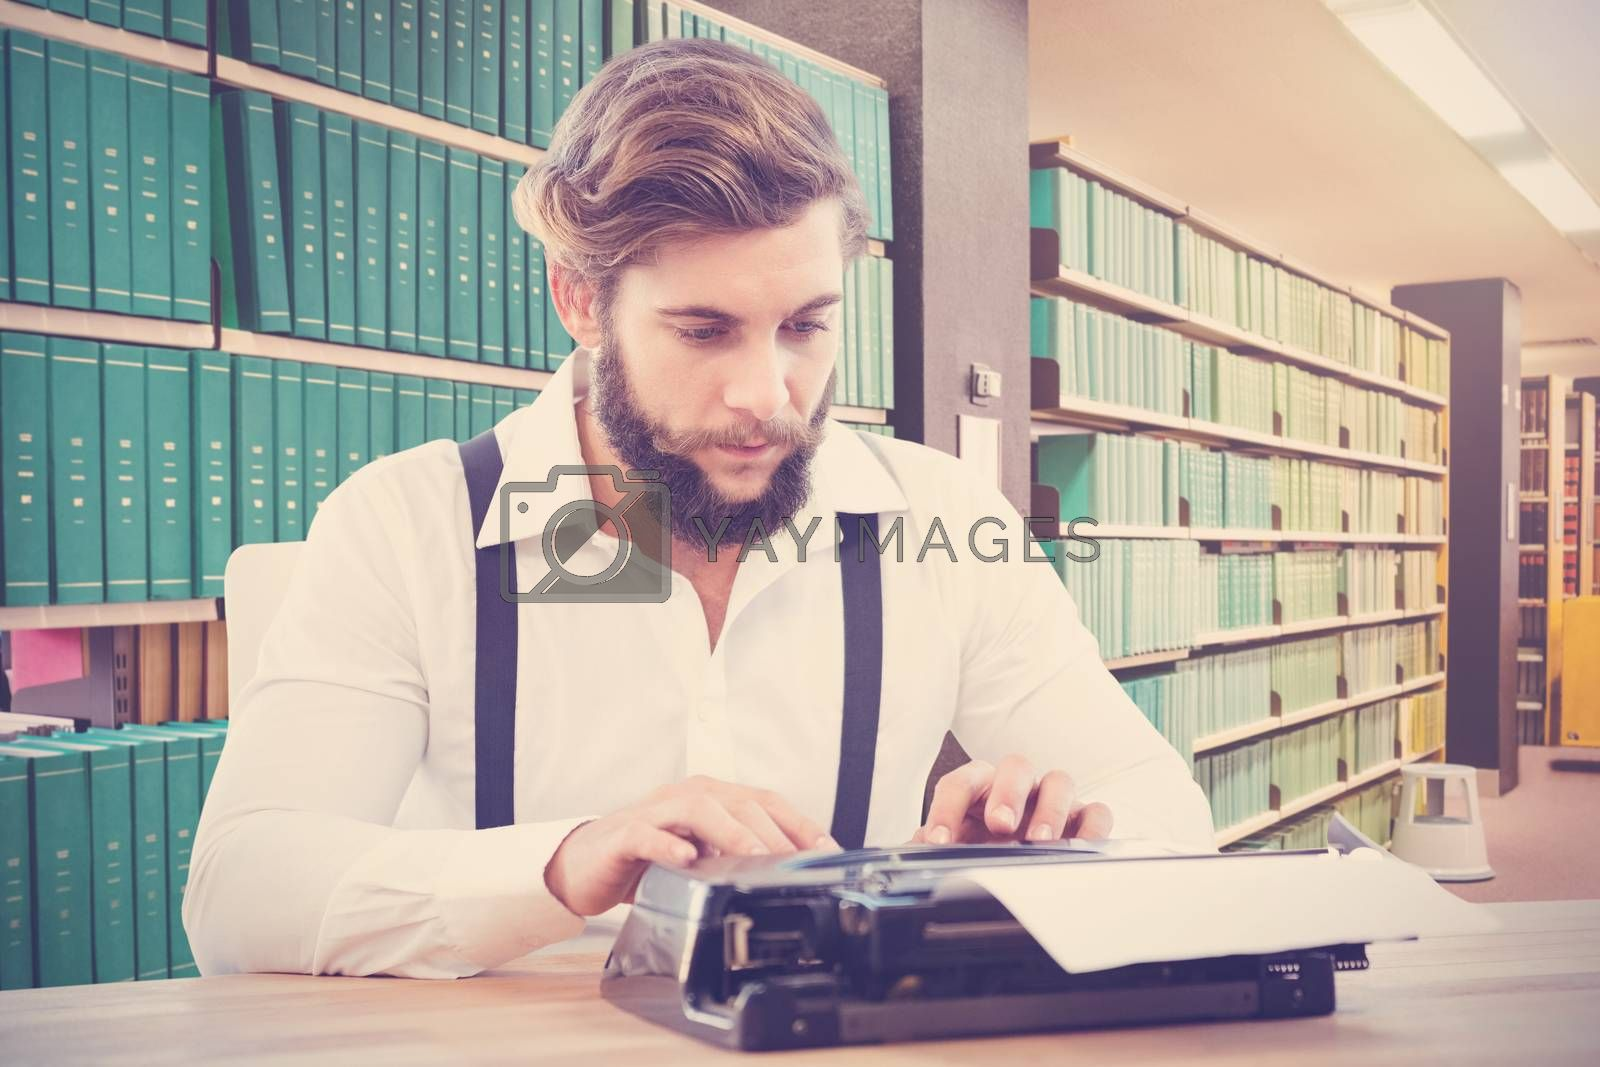 Hipster working on typewriter against close up of a bookshelf